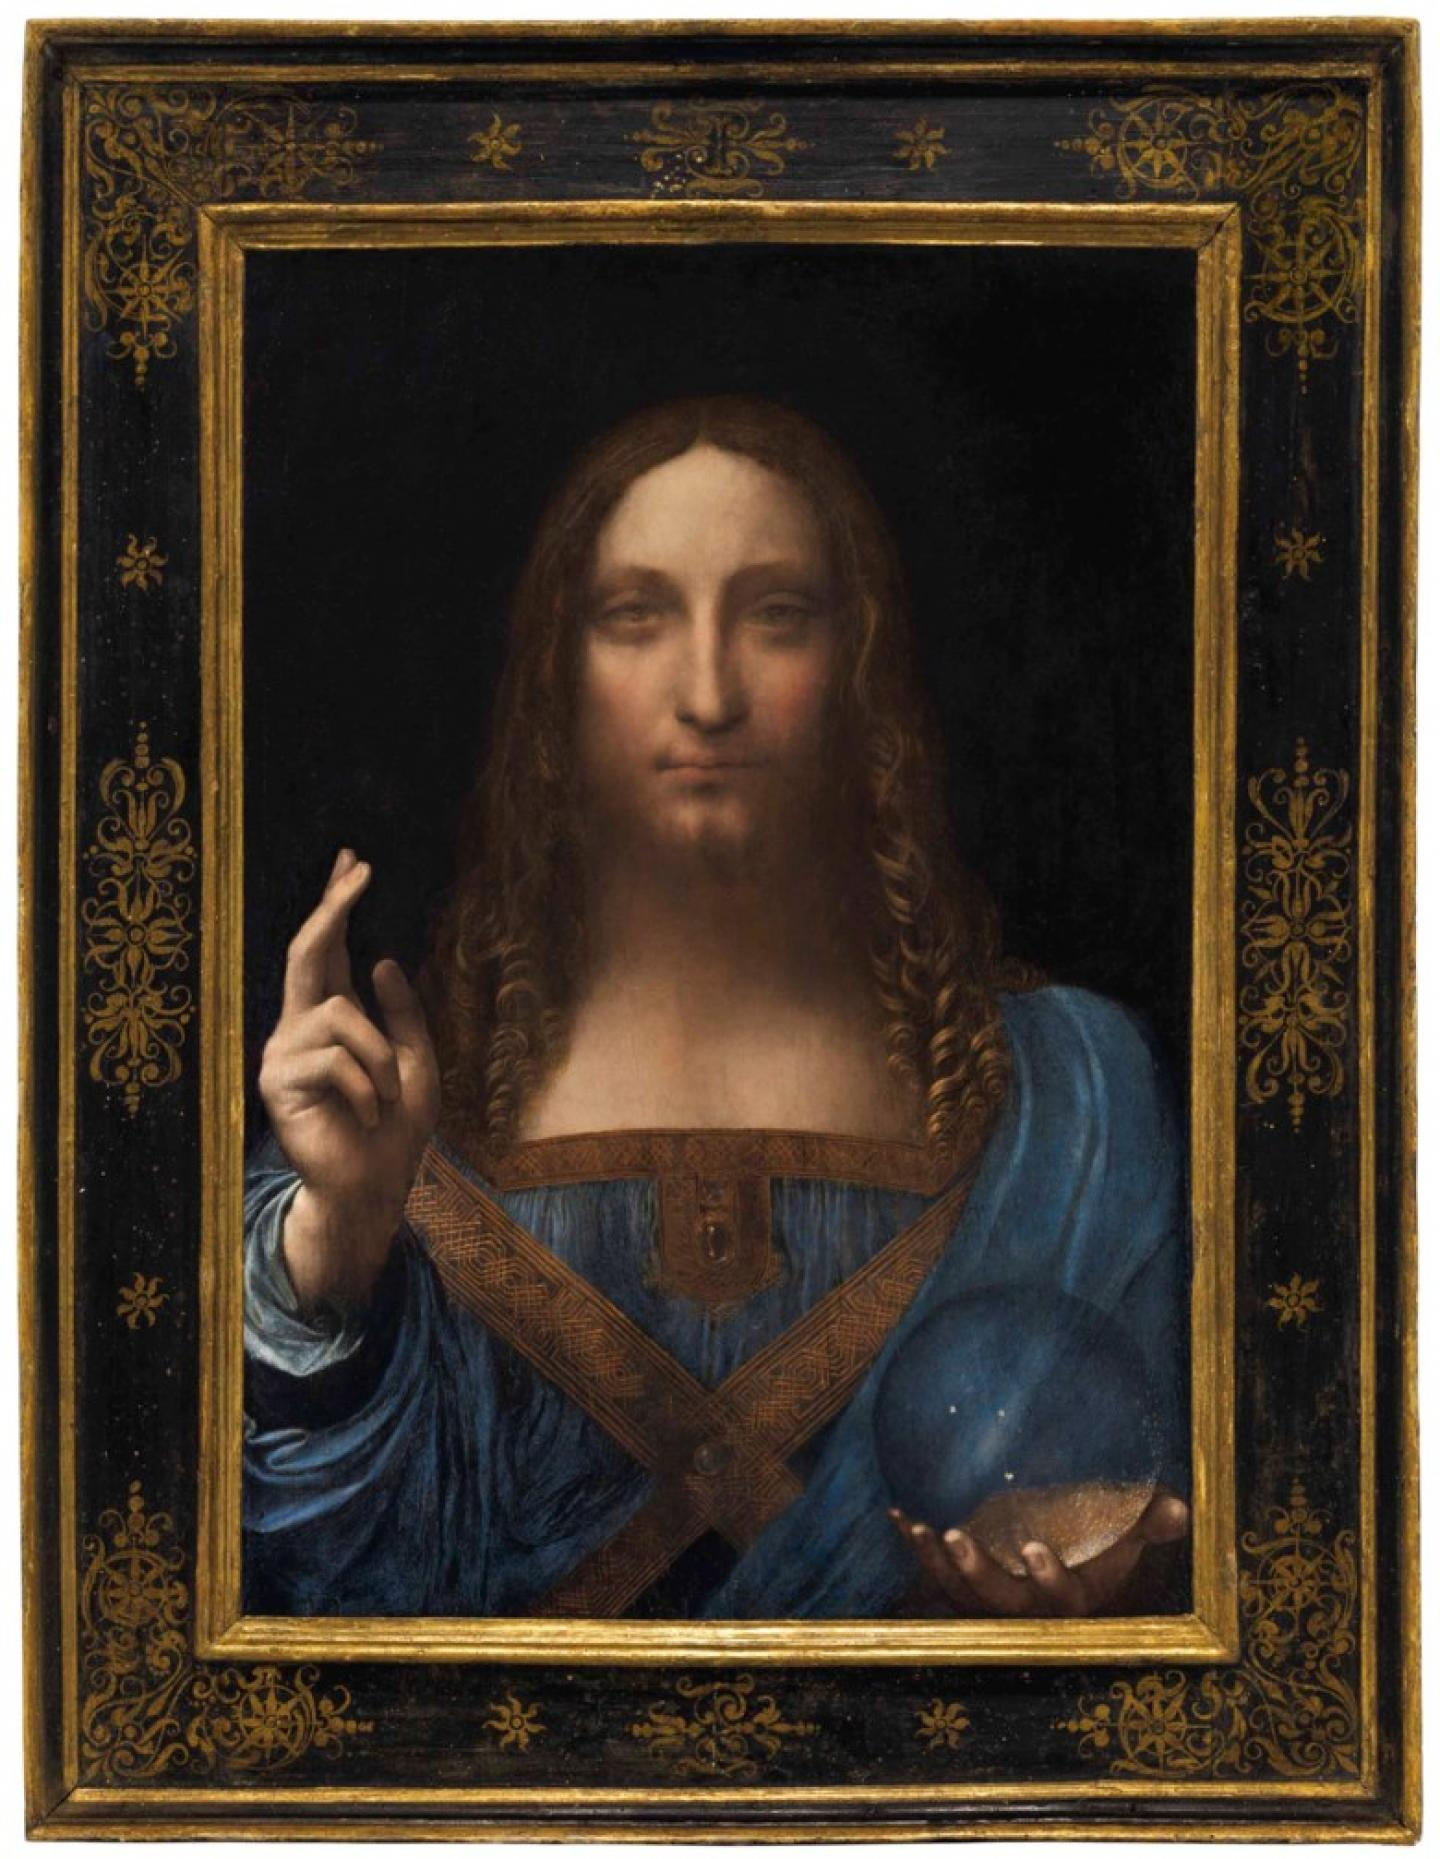 ©Christie's Leonardo da Vinci (1452-1519), Salvator Mundi, painted circa 1500. 25⅞ x 18 in (65.7 x 45.7 cm). Sold for $450,312,500 in the Post-War & Contemporary Art Evening Sale on 15 November 2017 at Christie's in New York